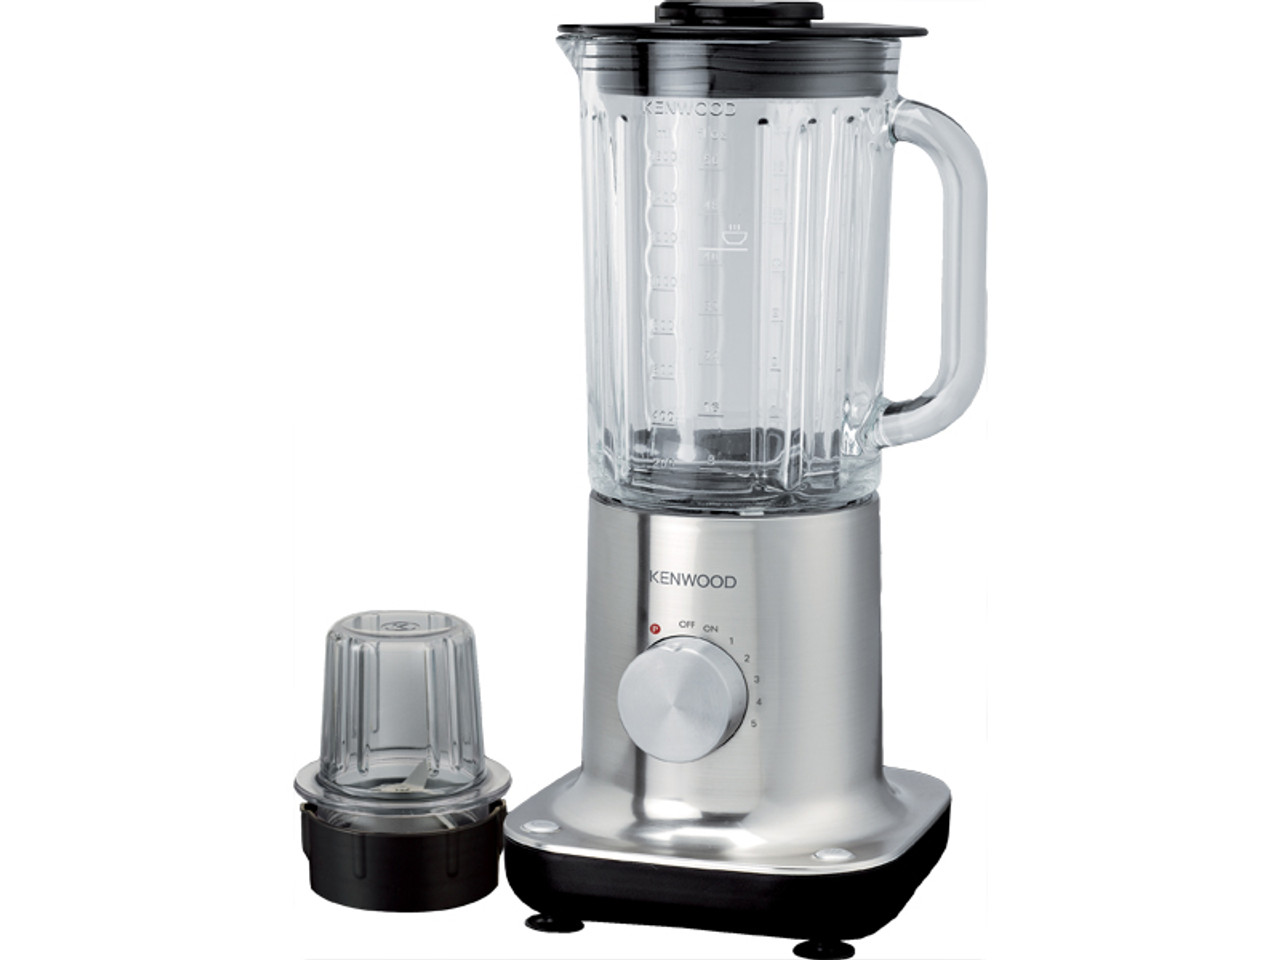 Kenwood BL705 ThermoResist Blender Brushed Stainless 5-Speed + Pulse 480W with Glass Goblet